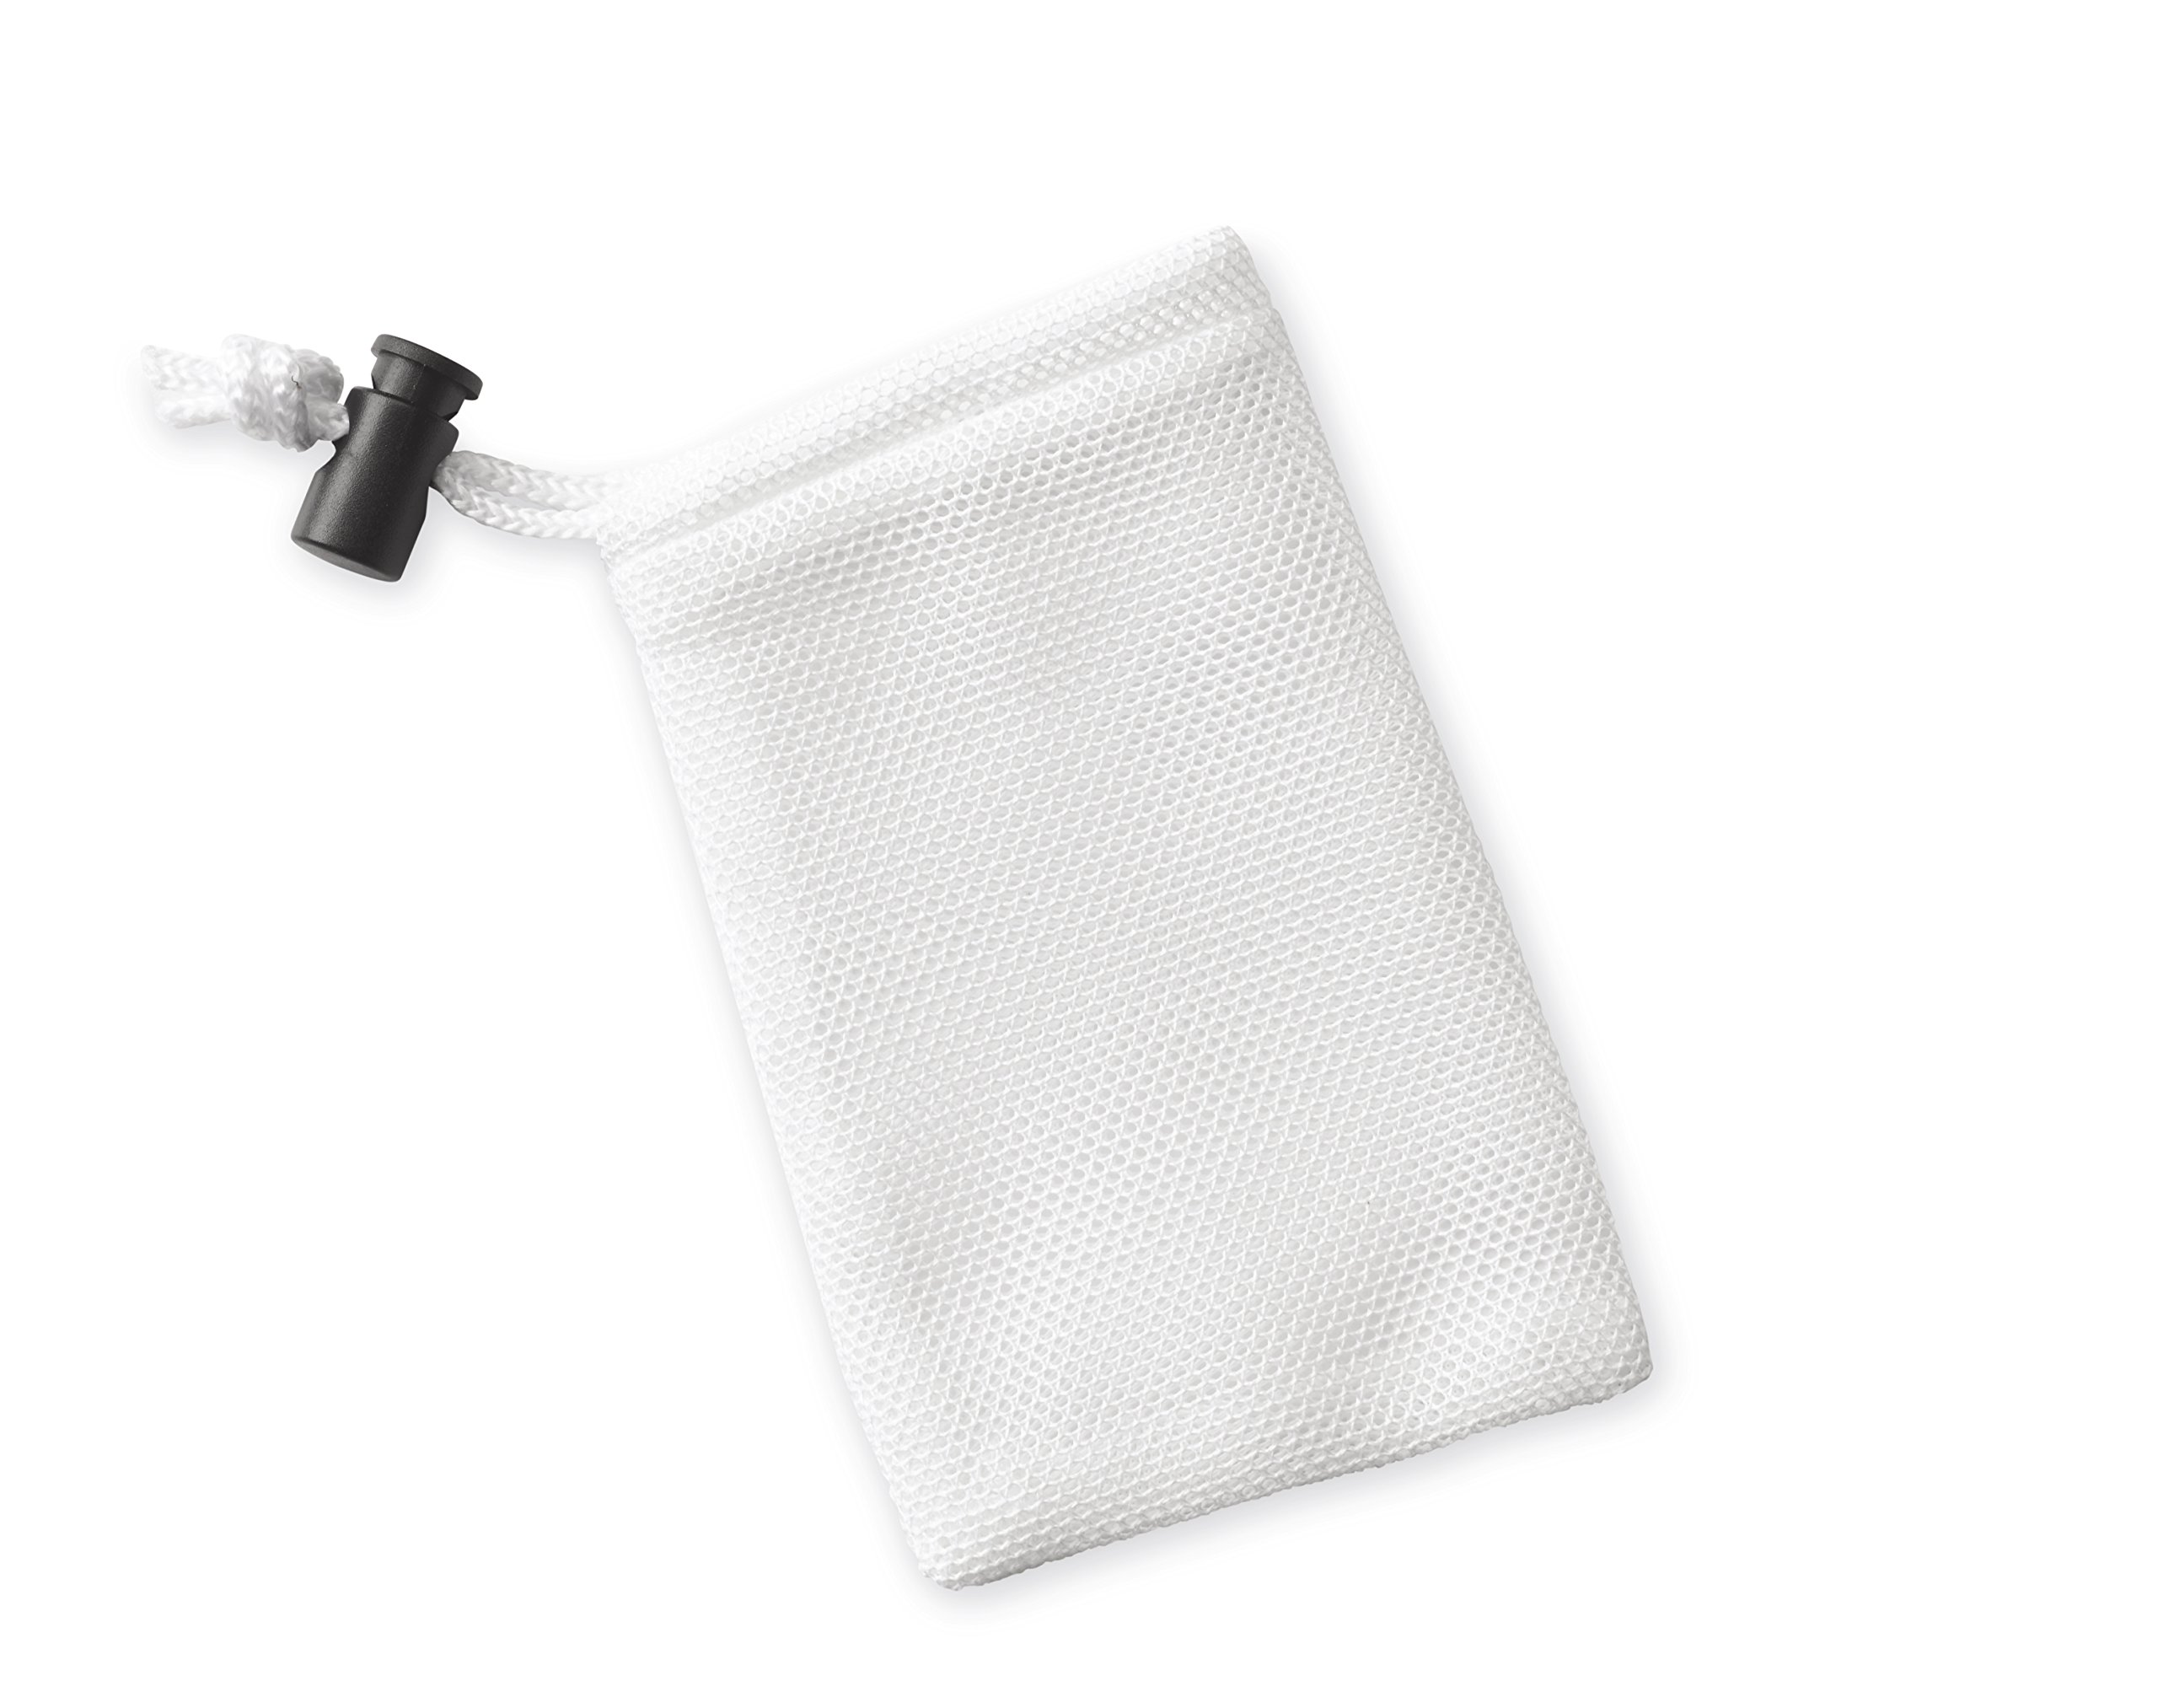 Key Surgical MB-0305 Mesh Bag